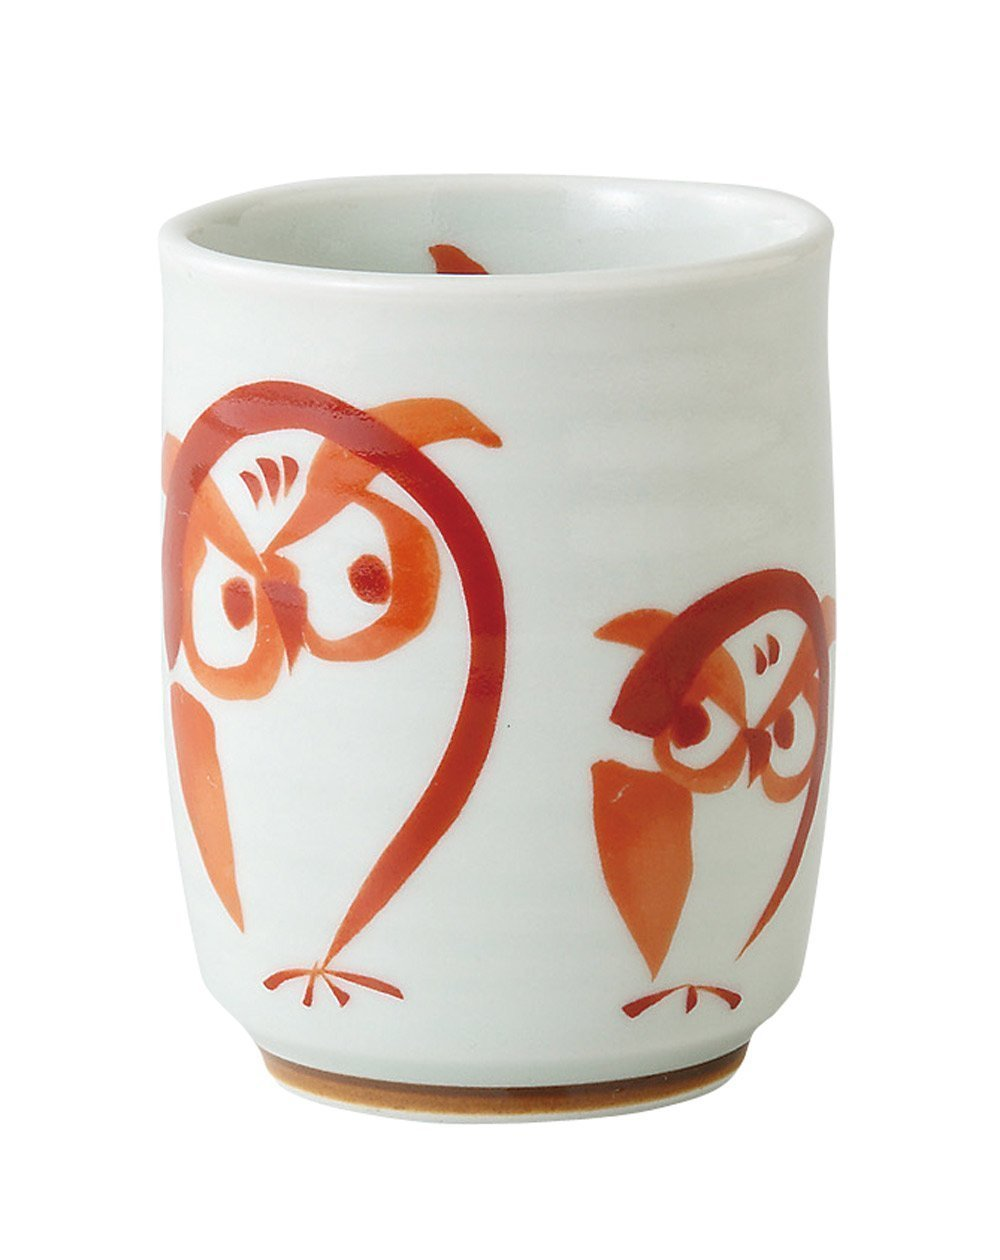 Japanese Teacup Yunomi Red Owl Size S 69074 From Japan